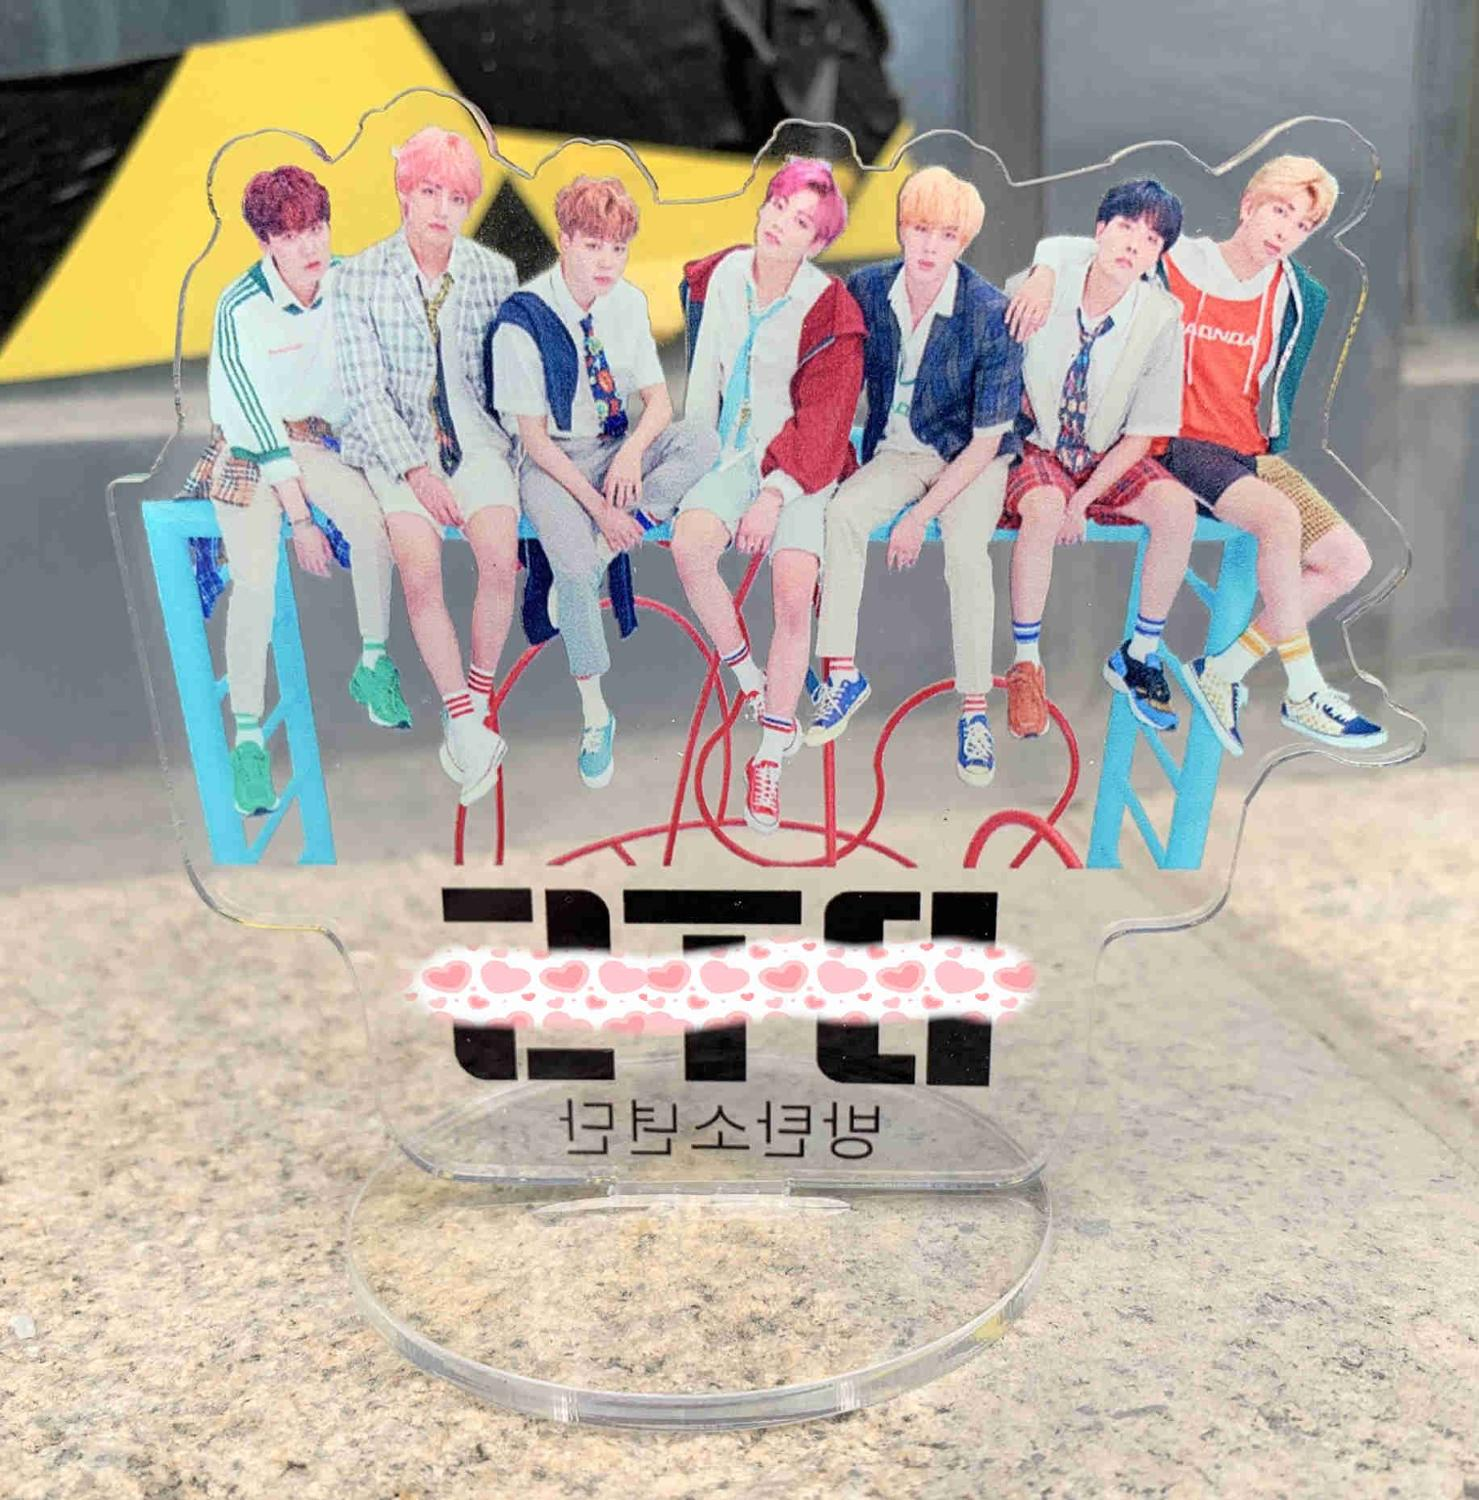 KPOP Idol Toys RM V JIN JIMIN SUGA JUNG KOOK J-HOPE Acrylic Stand Model  Action Figure Doll Toy Gift